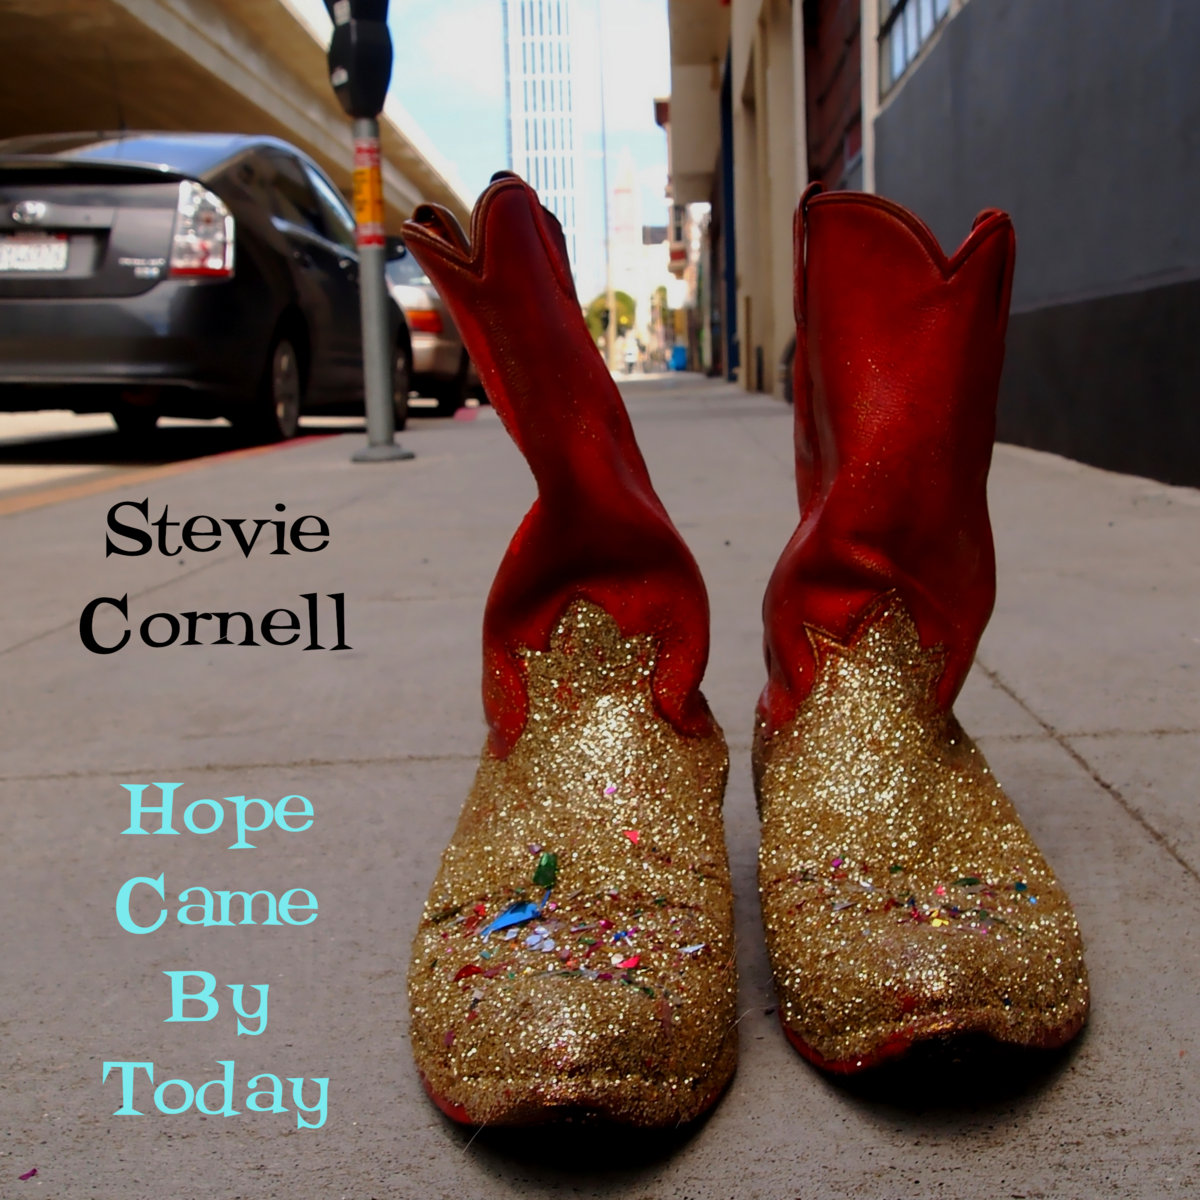 Hope Came By Today by Stevie Cornell